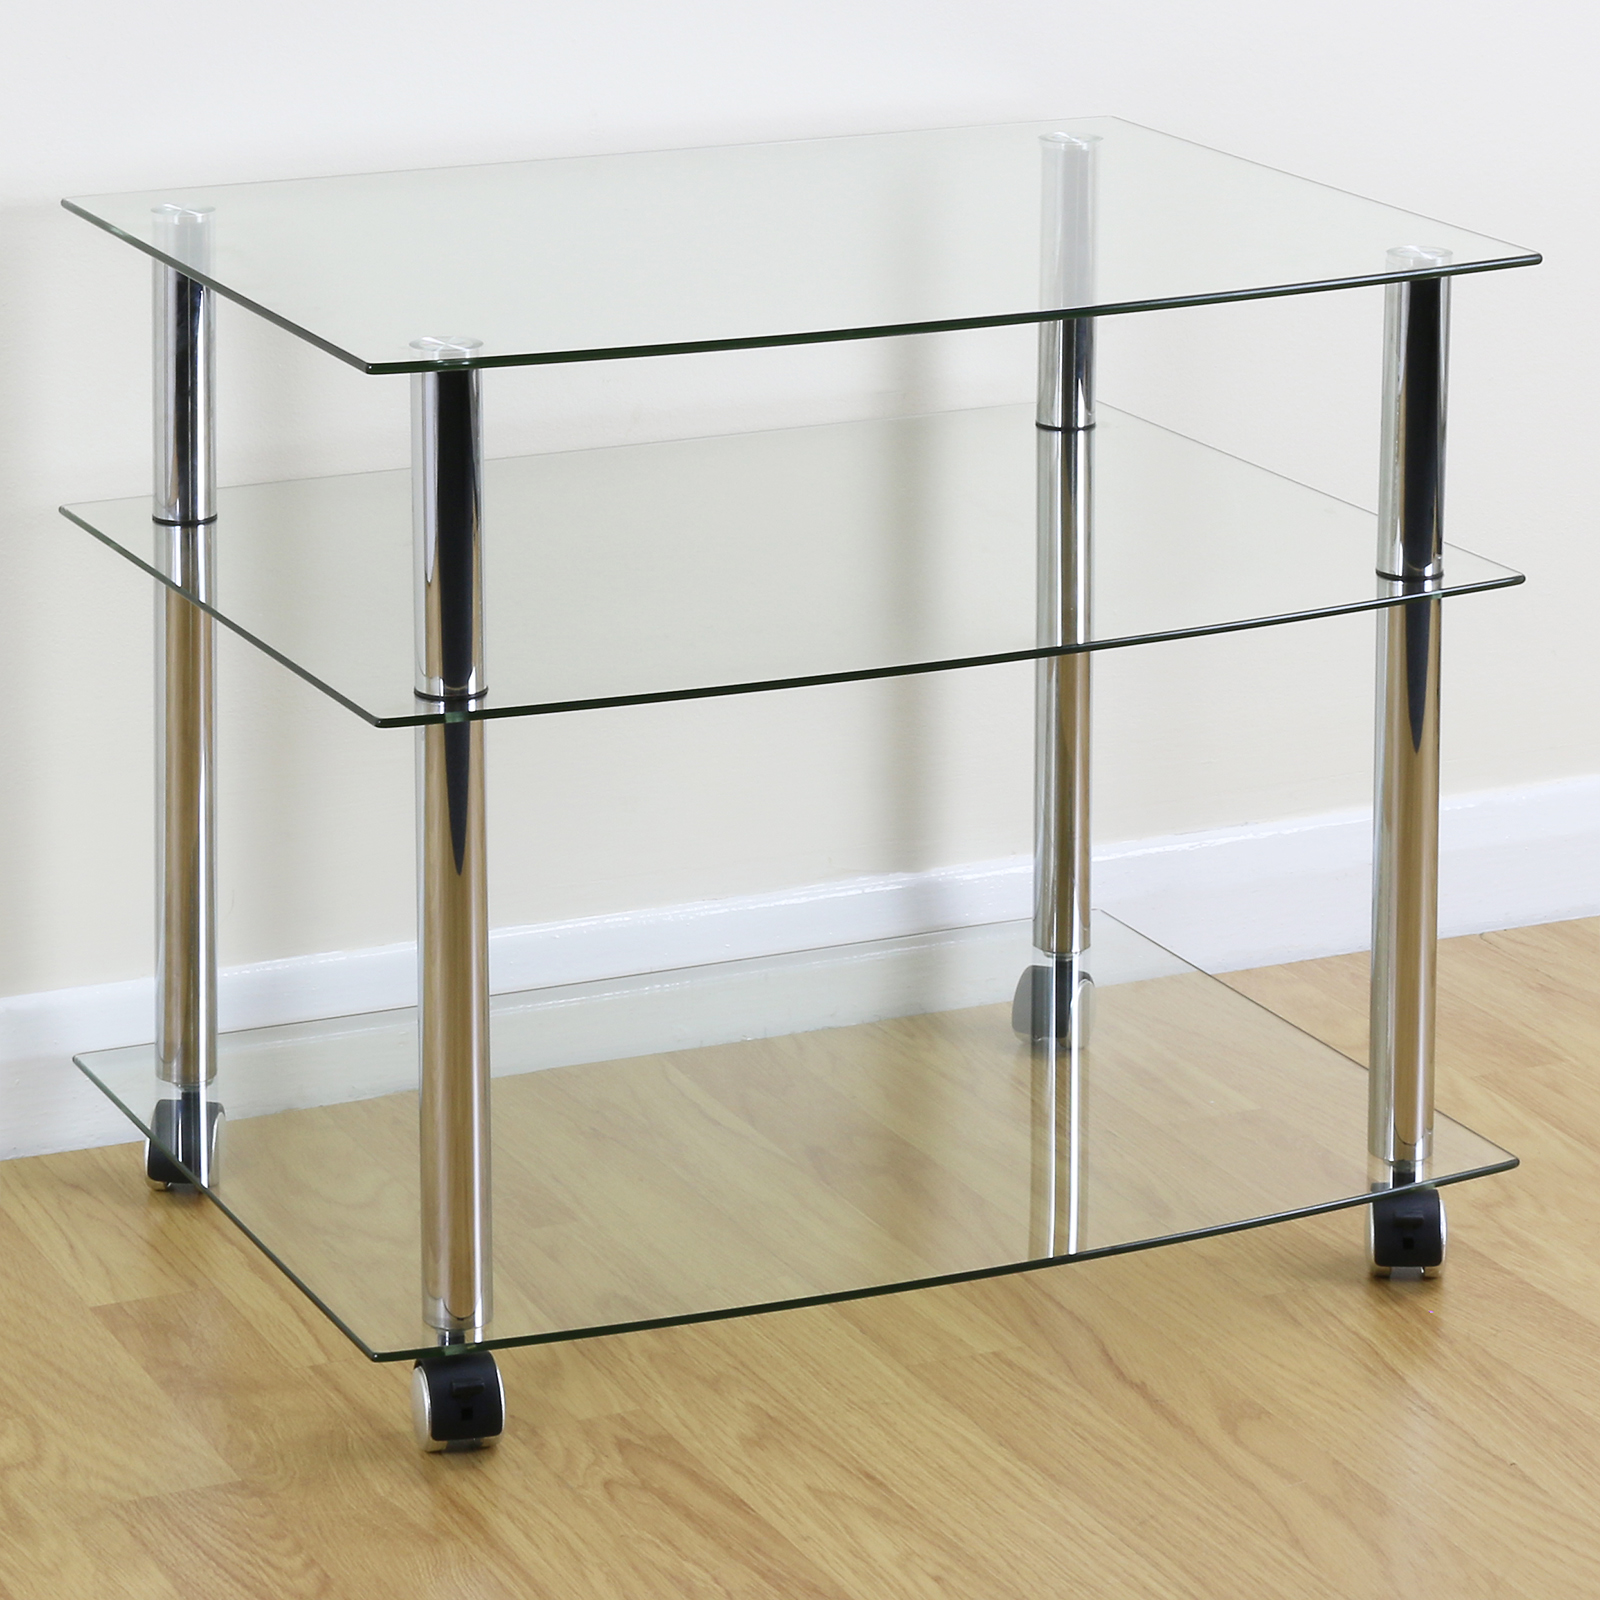 Tv Stand With Wheels Mobile Chrome And Clear Glass 3 Shelf Tv Stand Trolley Unit